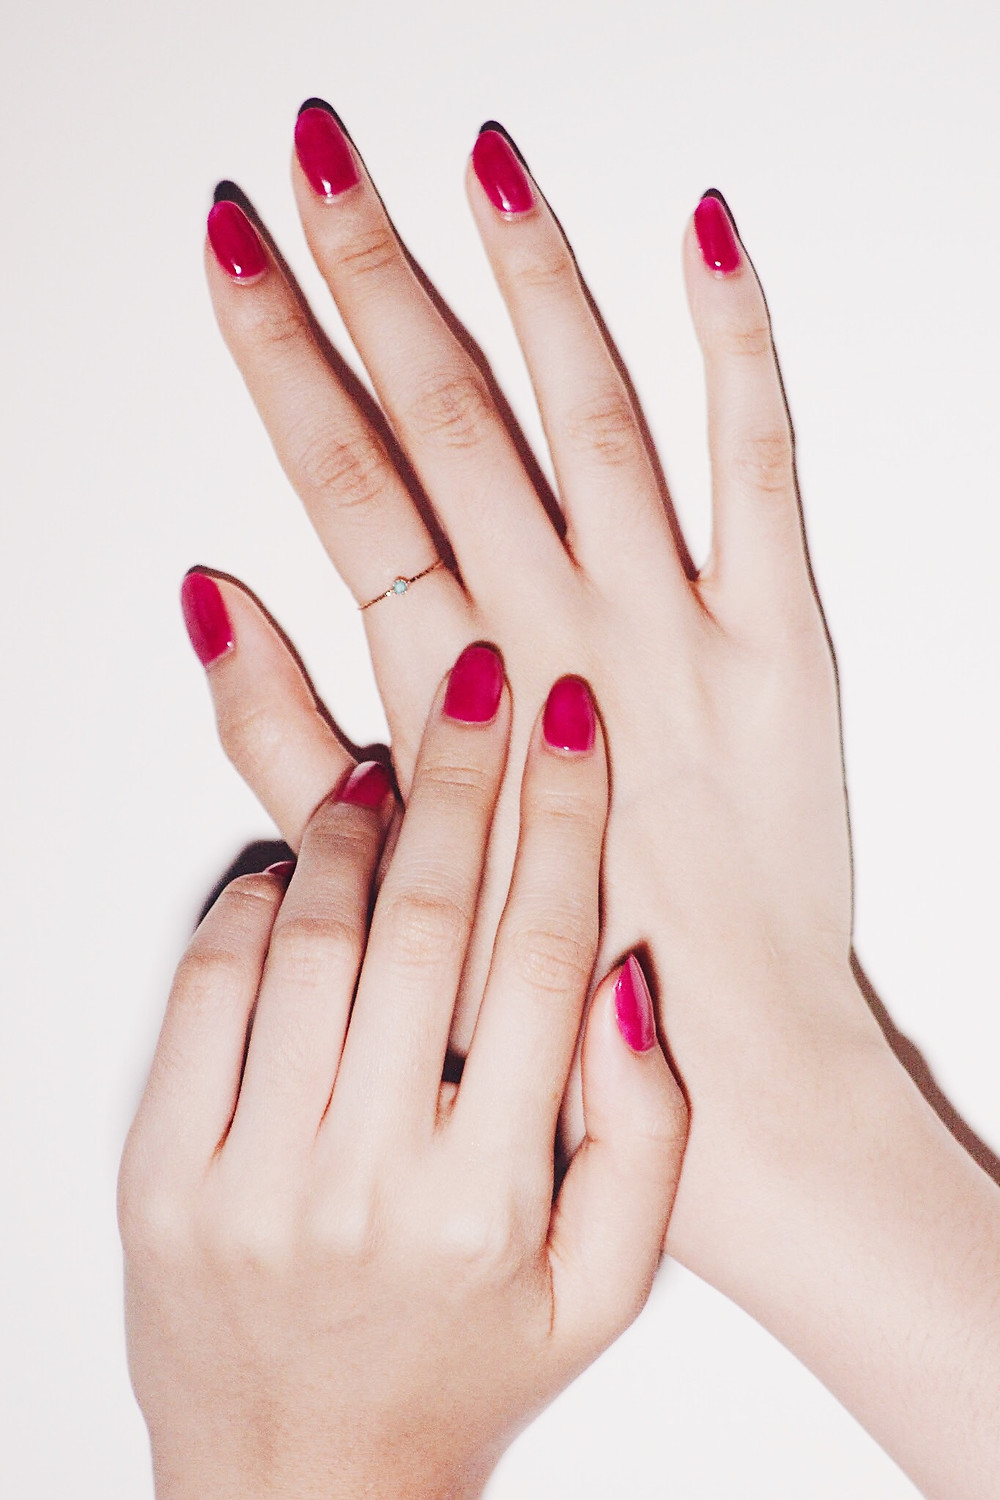 Nail Services in Los Angeles